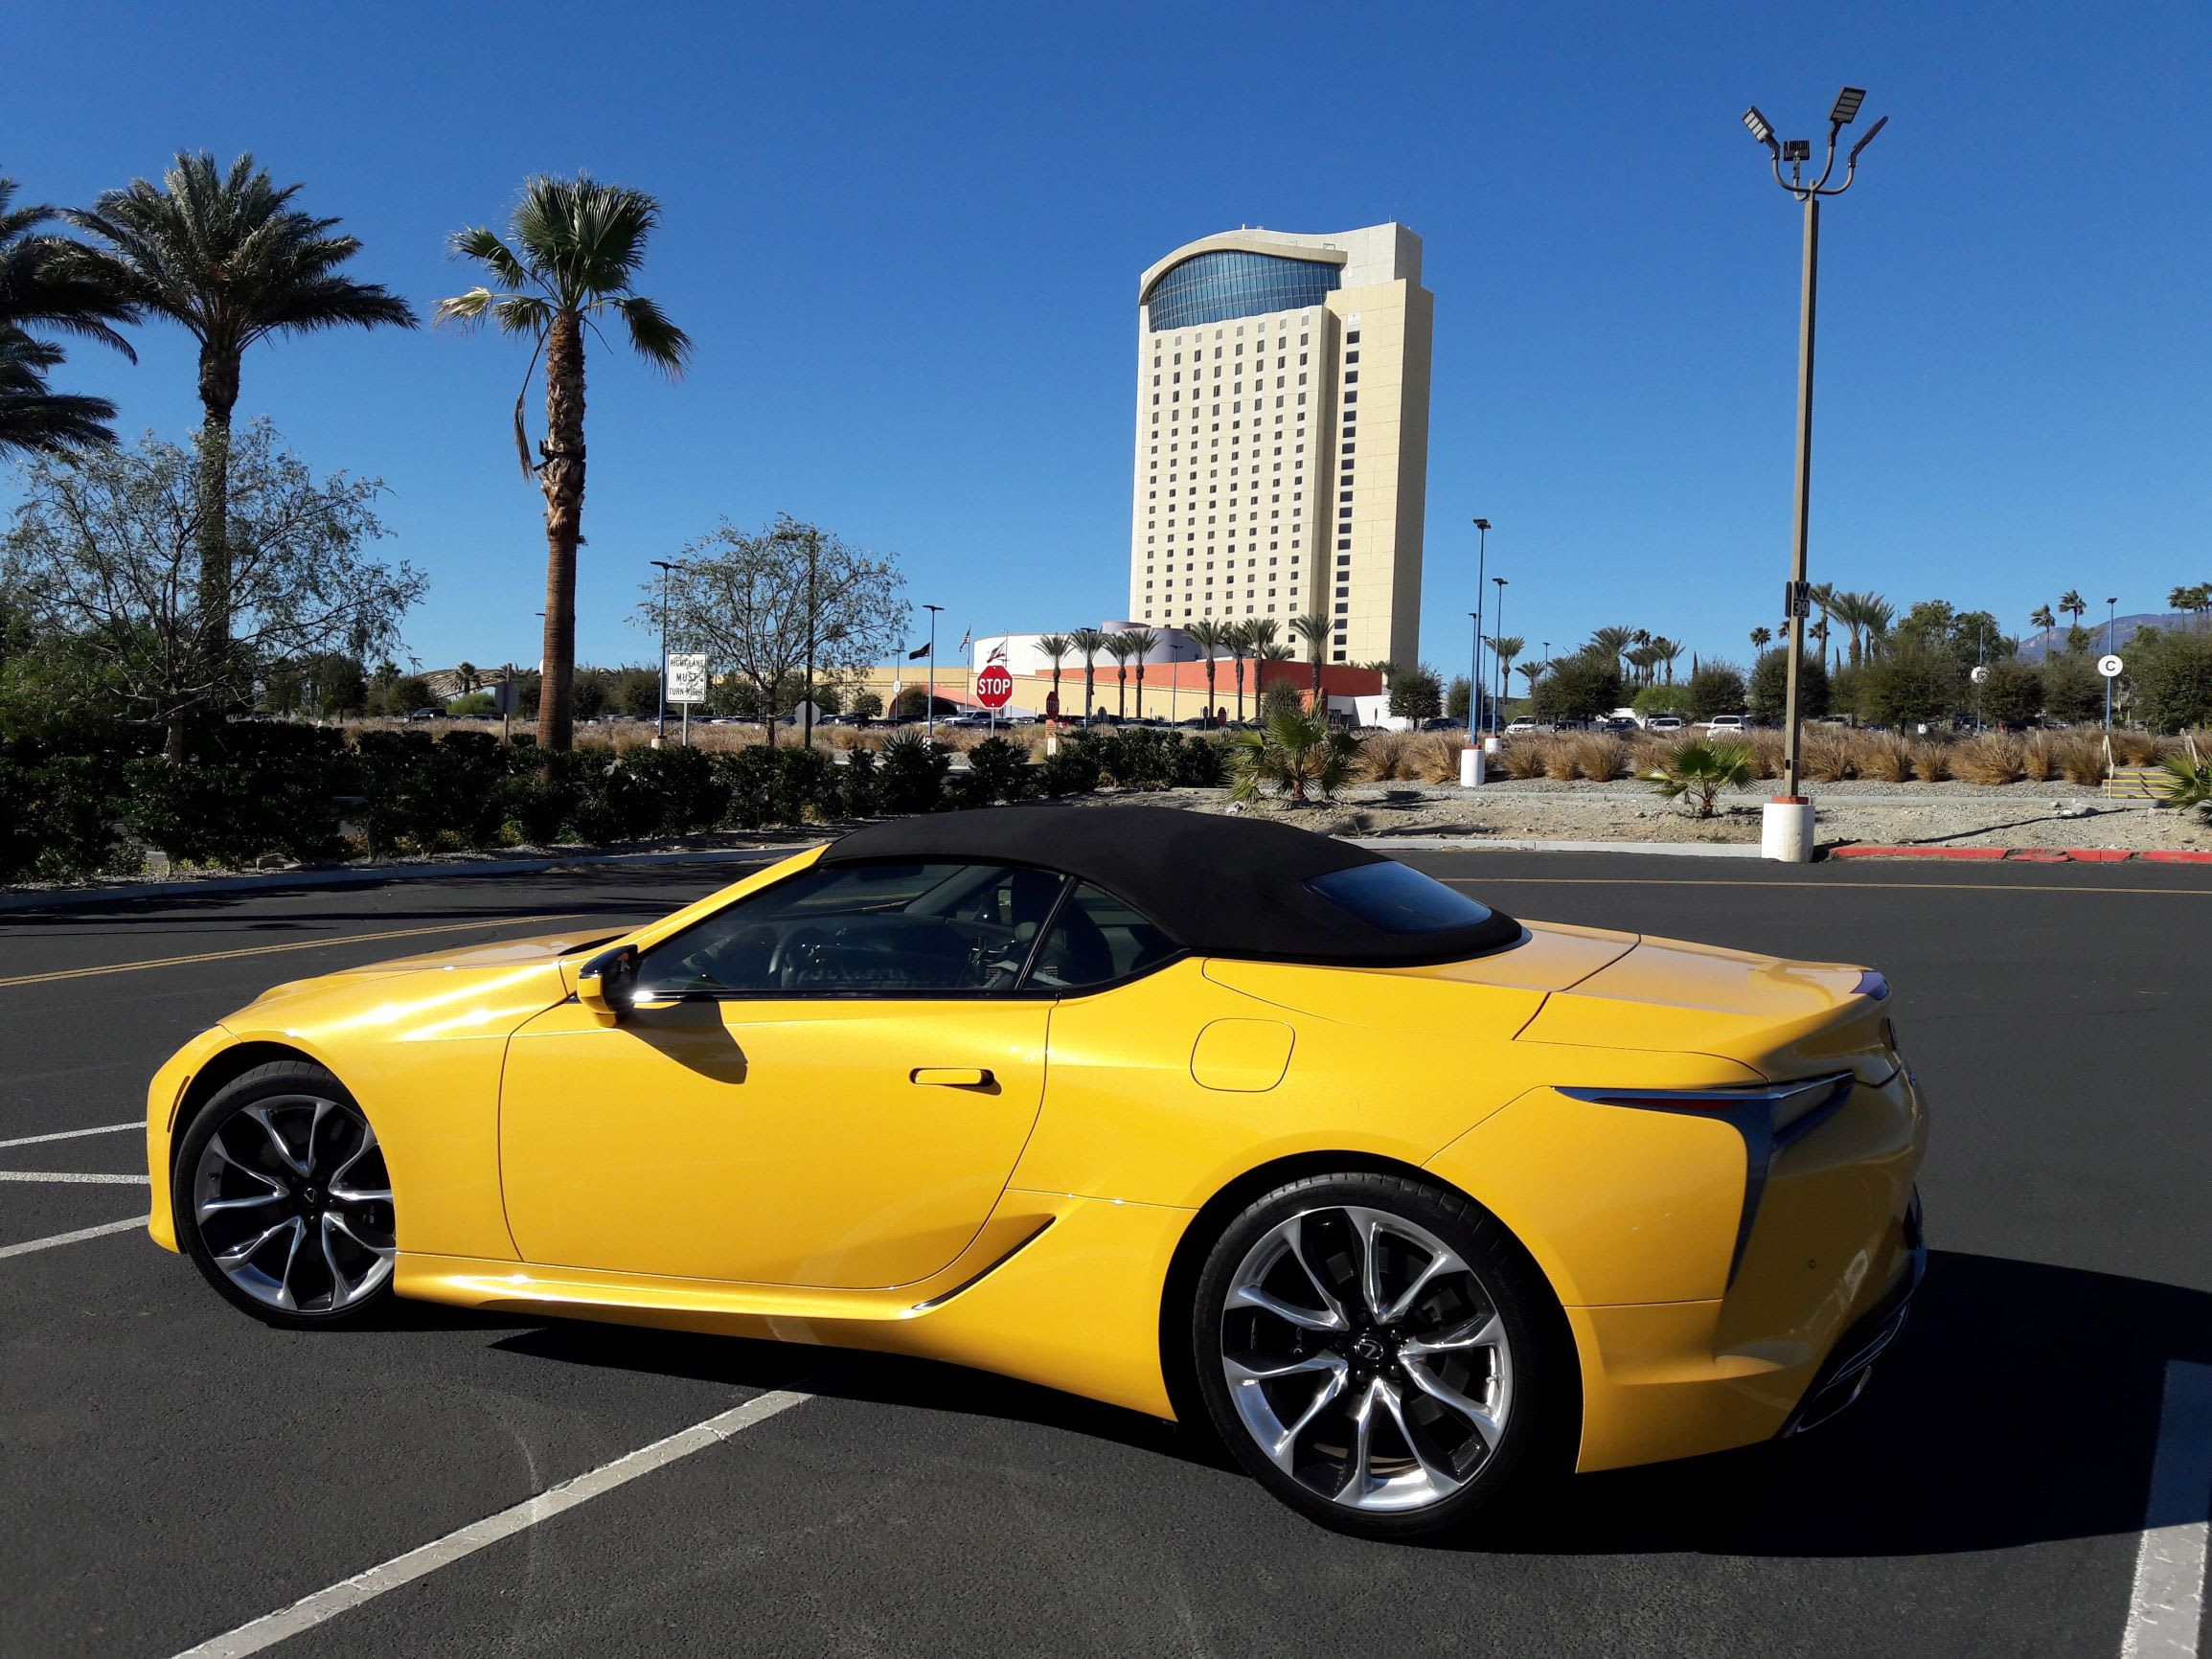 My LC500 was a stunning ray of yellow, which looked great against the blue skies of Palm Springs.